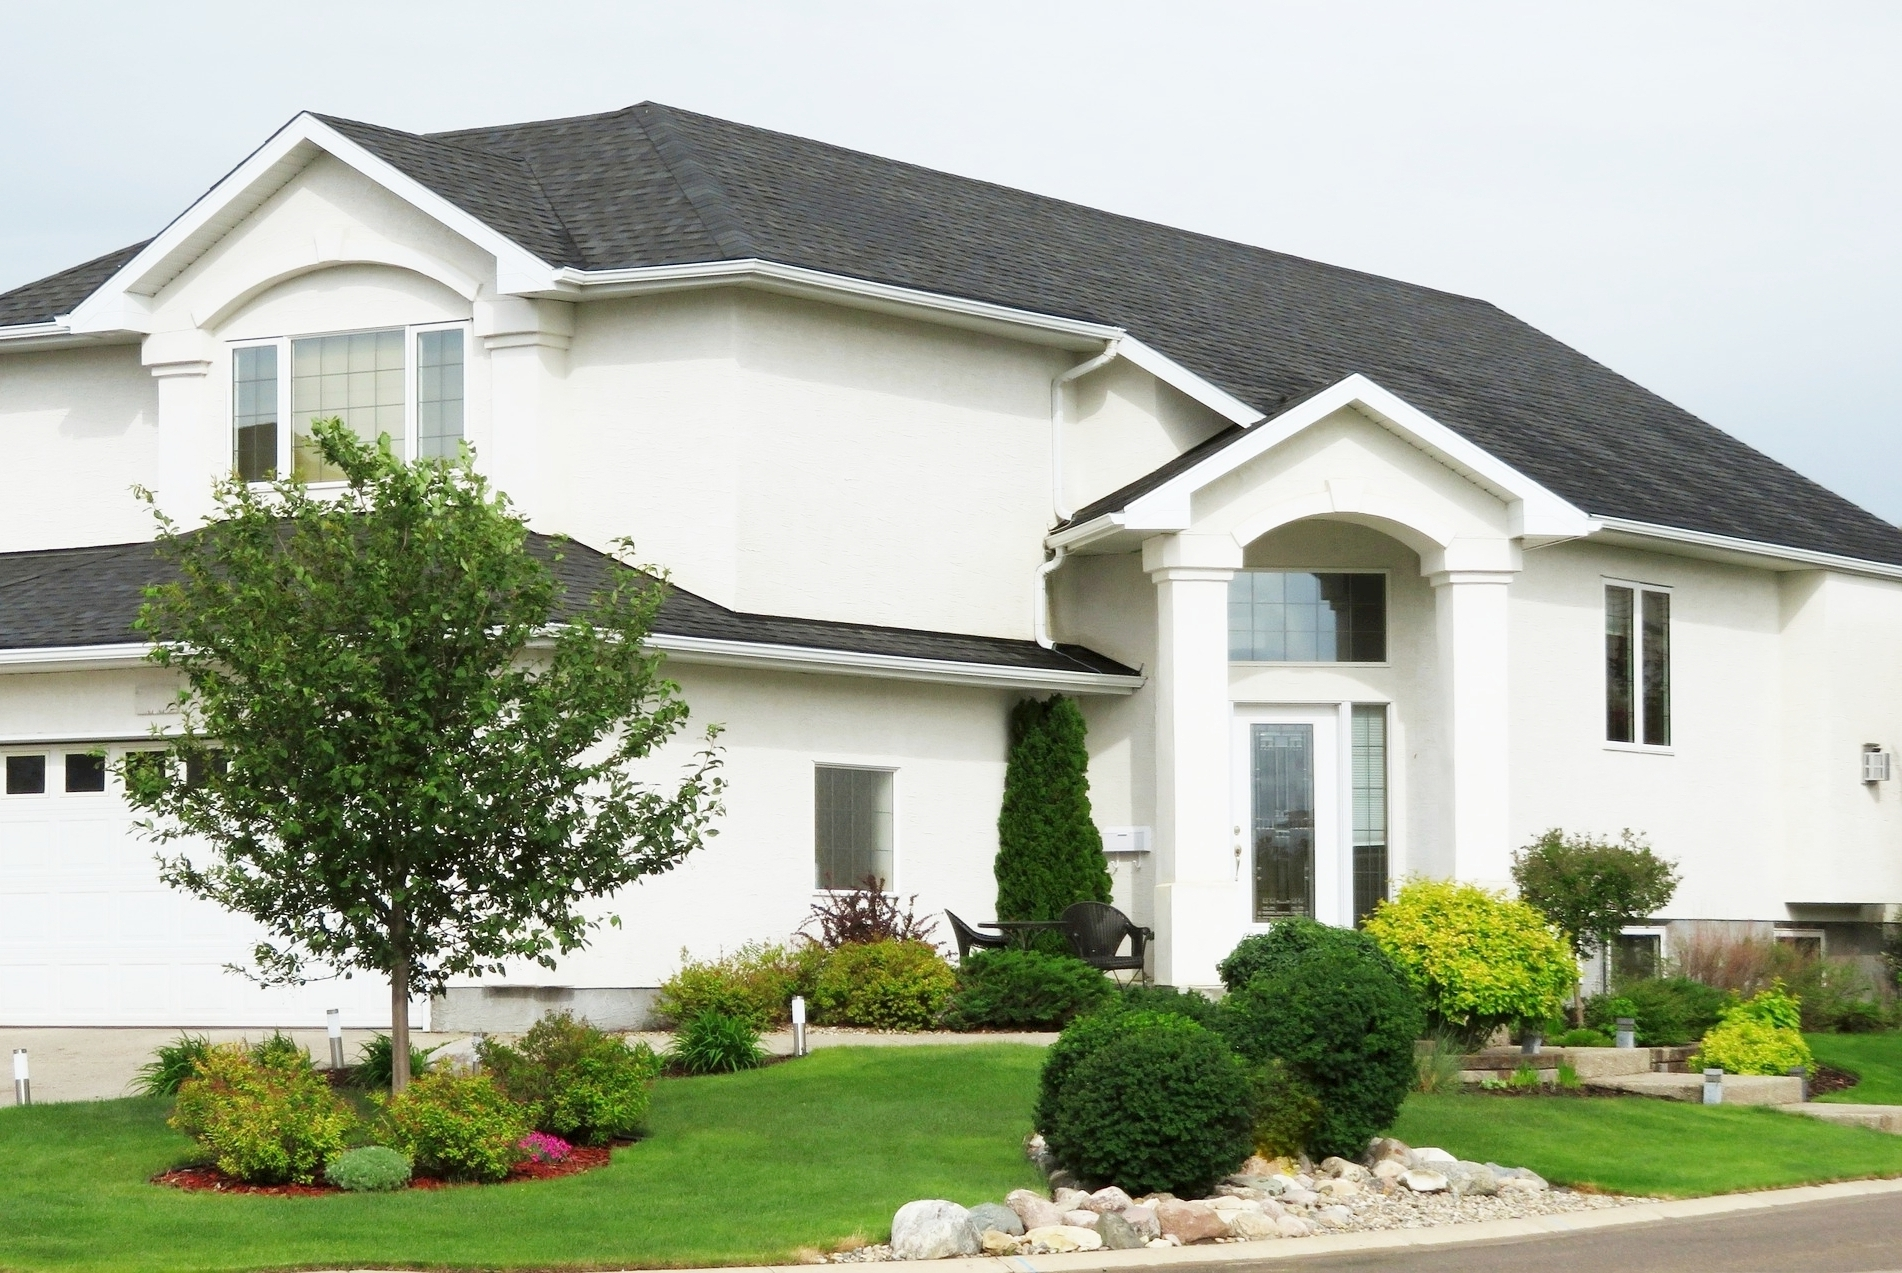 WELCOME TO SKYWARD EXTERIOR RESTORATION - Central Ohio's Restoration Experts